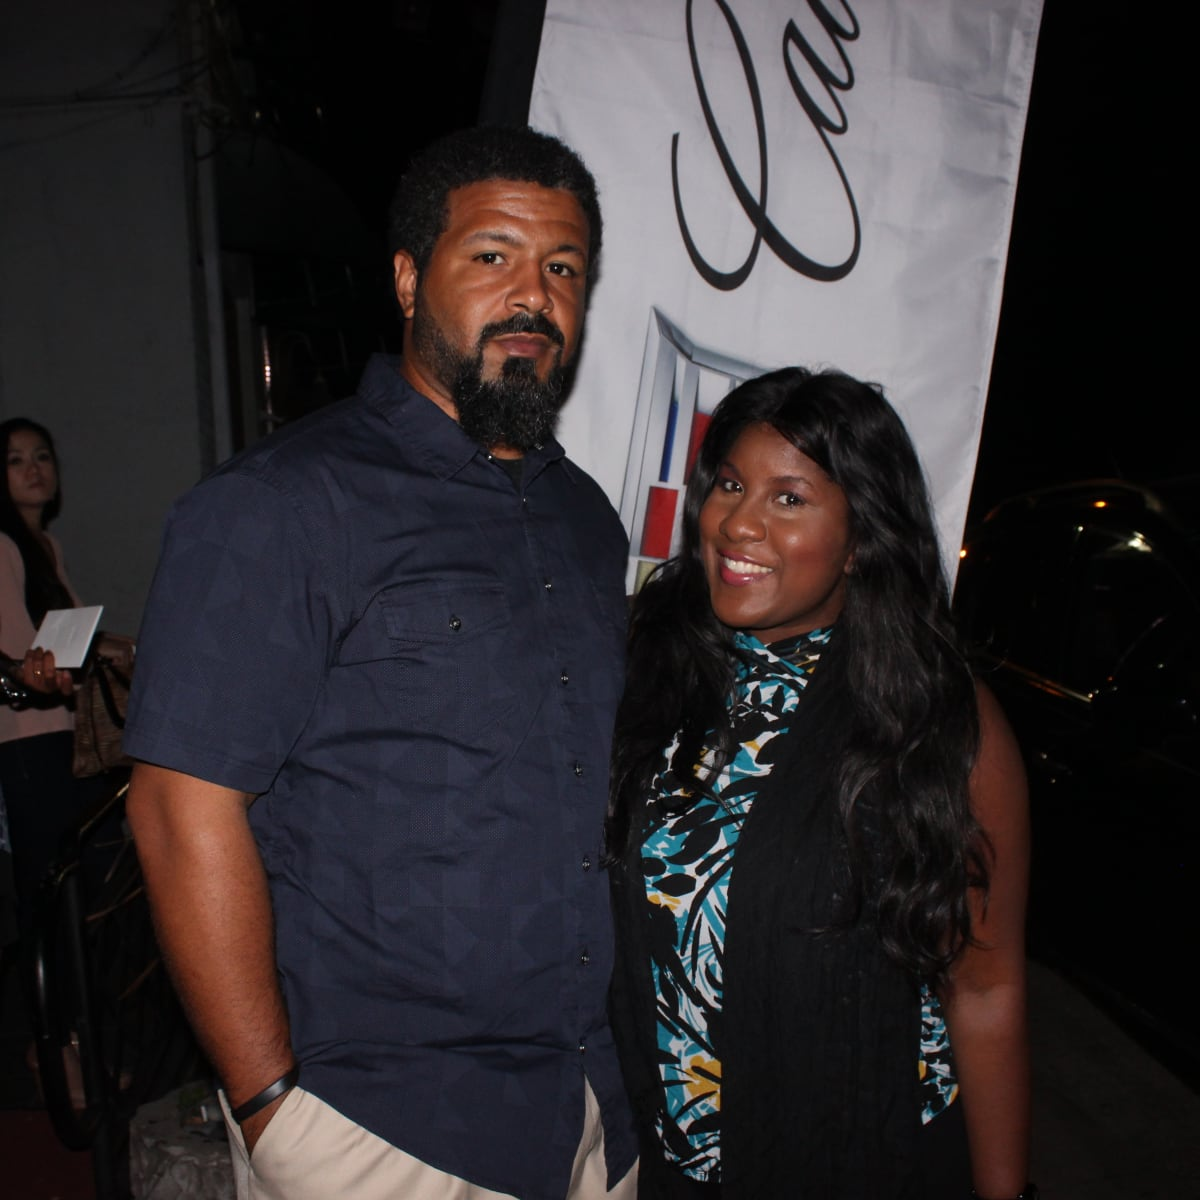 Houston, Cadillac Road to Table dinner, September 2015, Eric and Shanna Jones